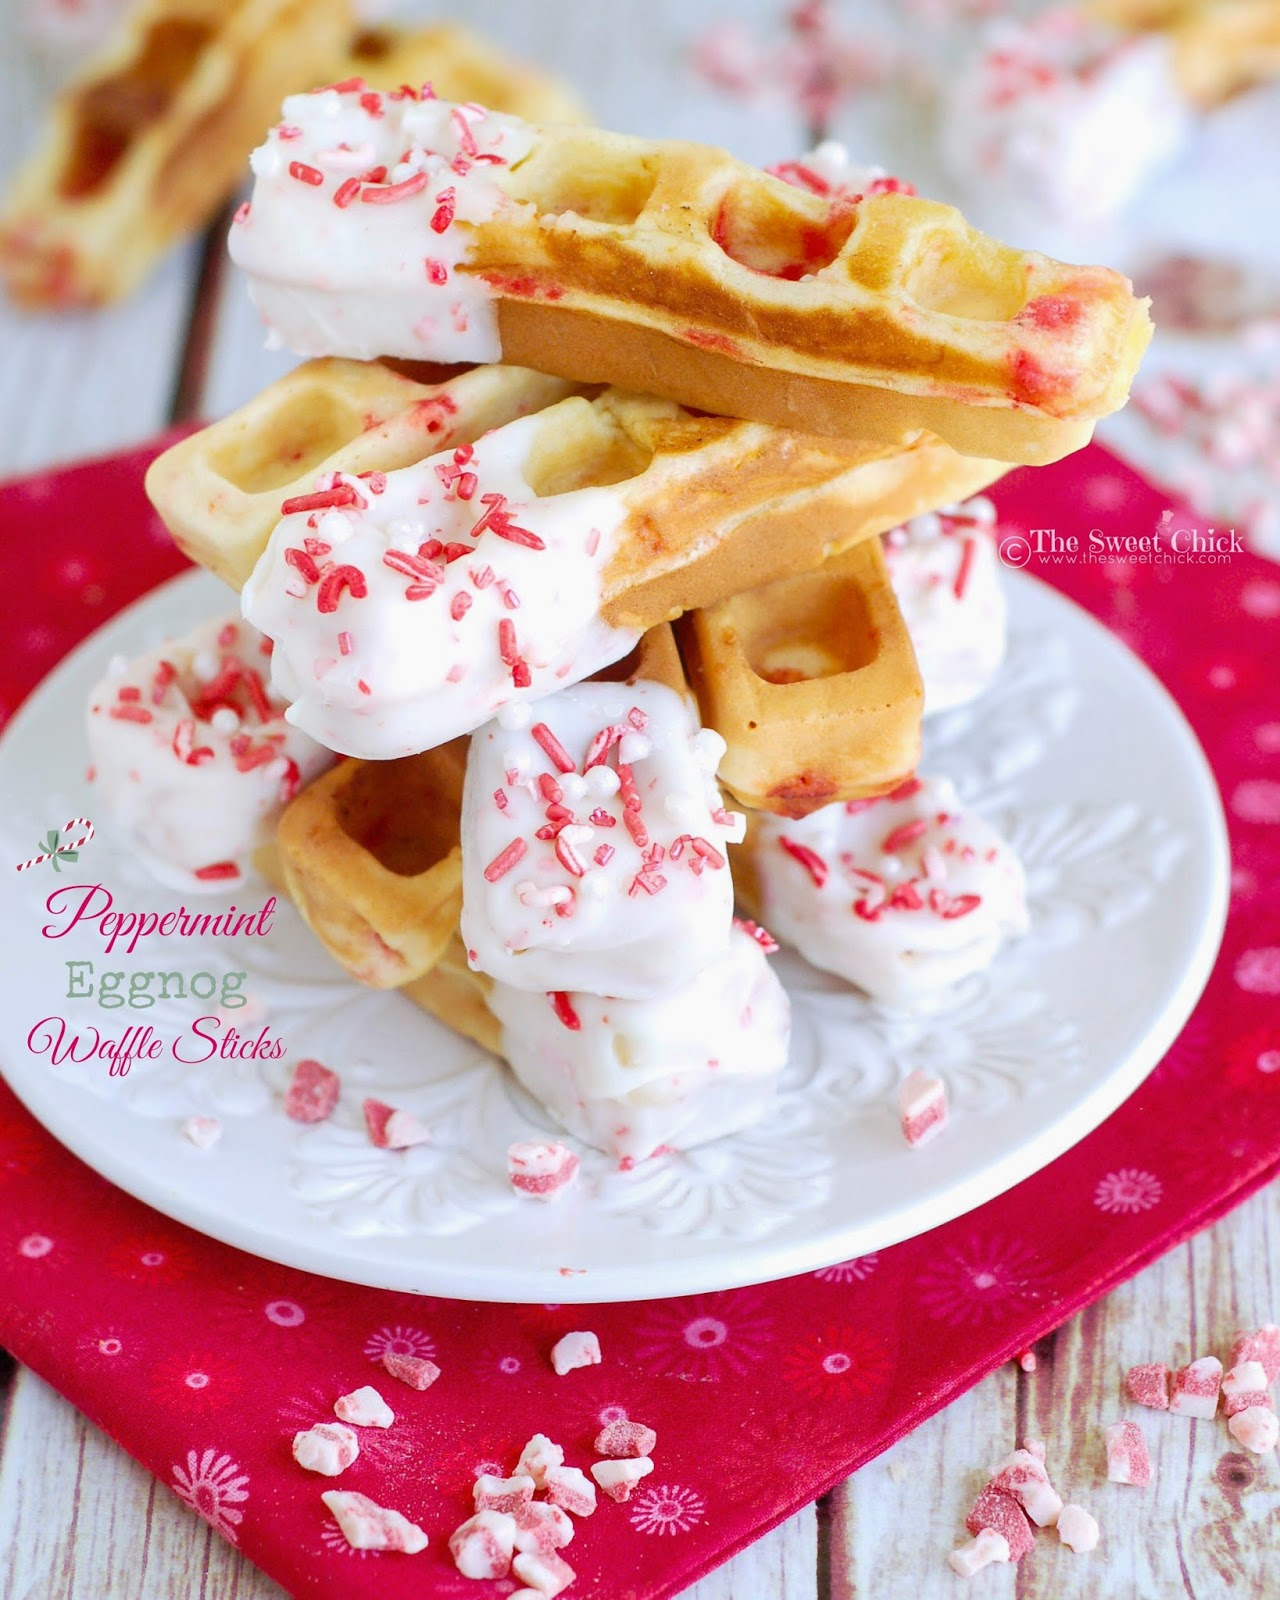 Peppermint Eggnog Waffle Sticks by The Sweet Chick